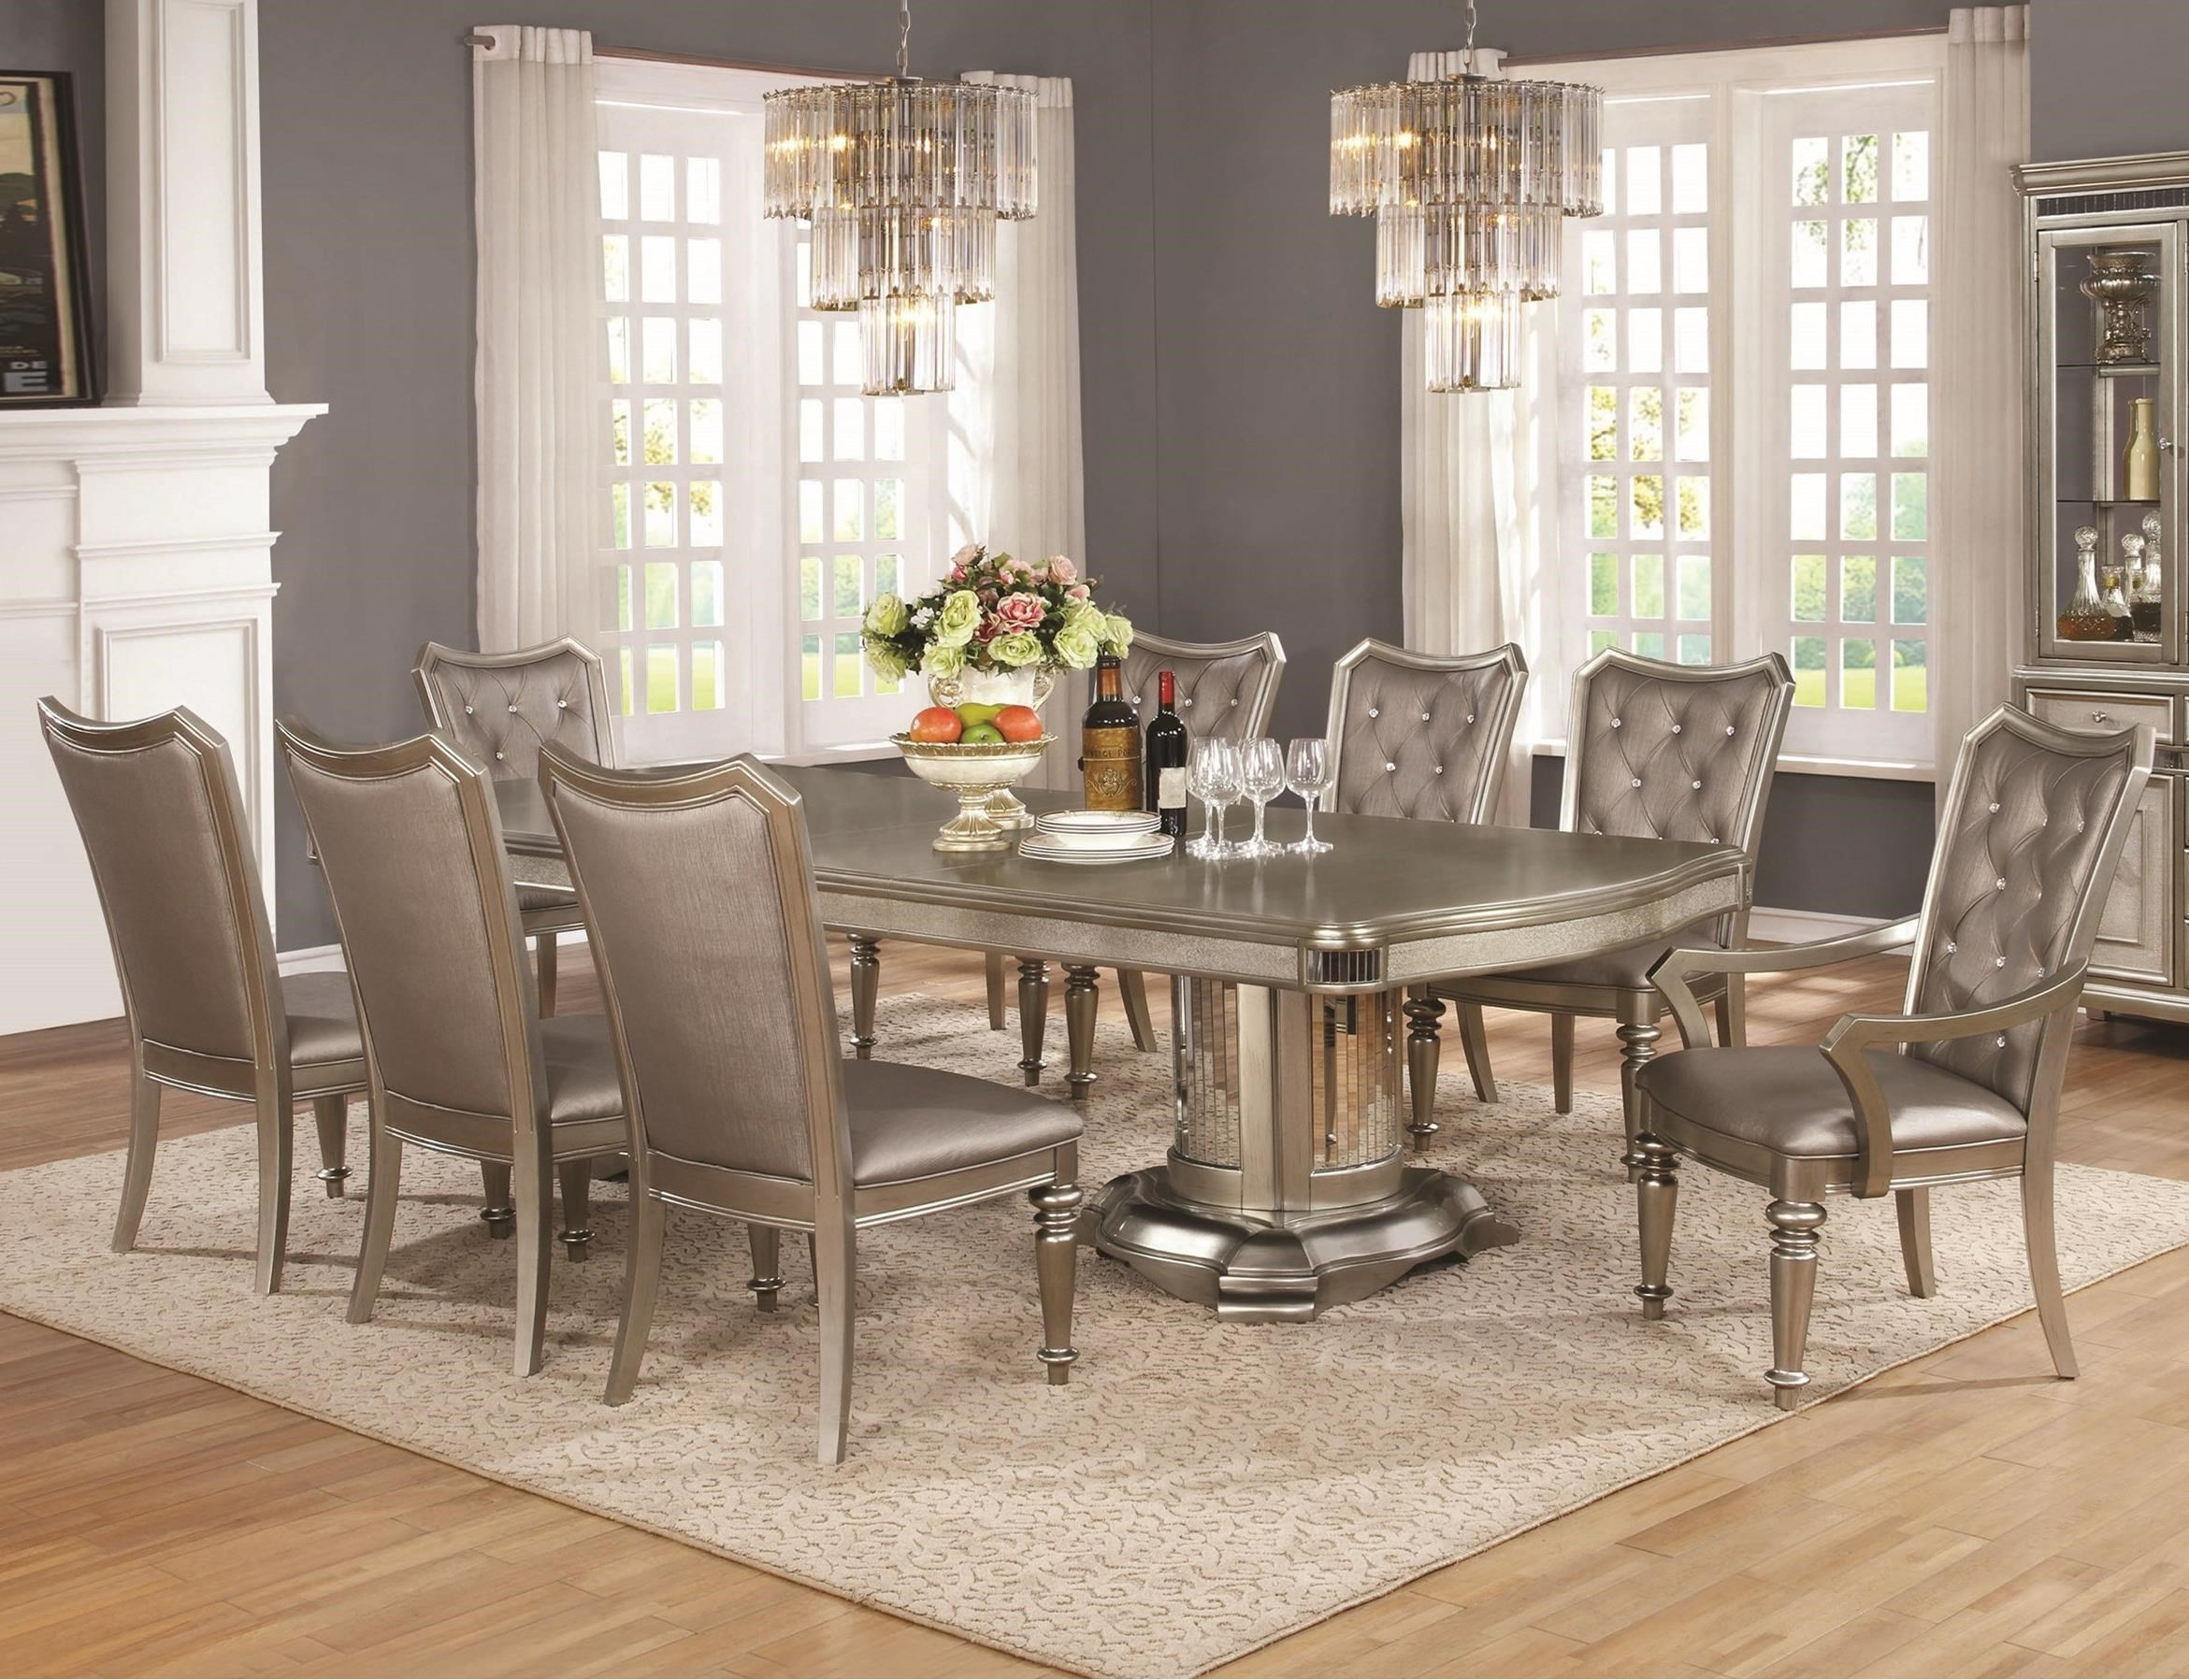 Coaster Danette - -181734809 9 Piece Table and Chair Set - Item Number: 107311+2x107313+6x107312